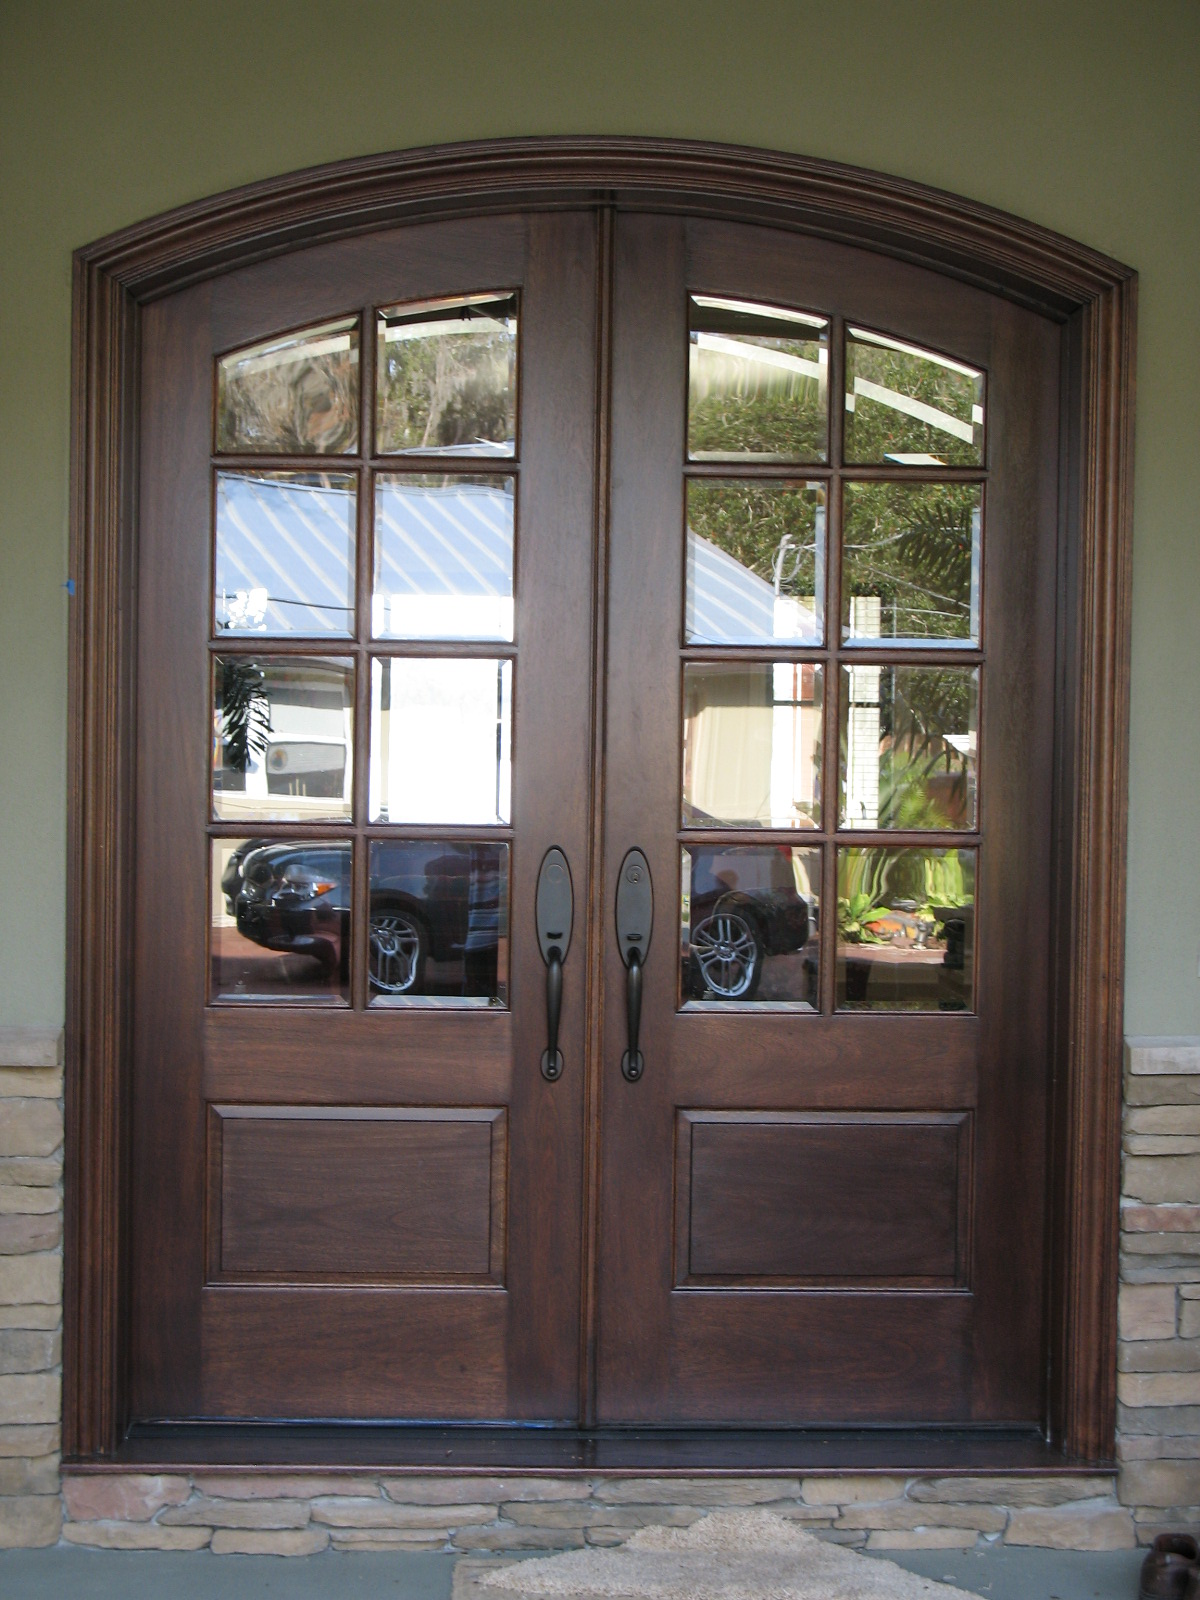 1600 #7E784E FRENCH DOORS  FD SERIES picture/photo Wood Glass Doors 41591200